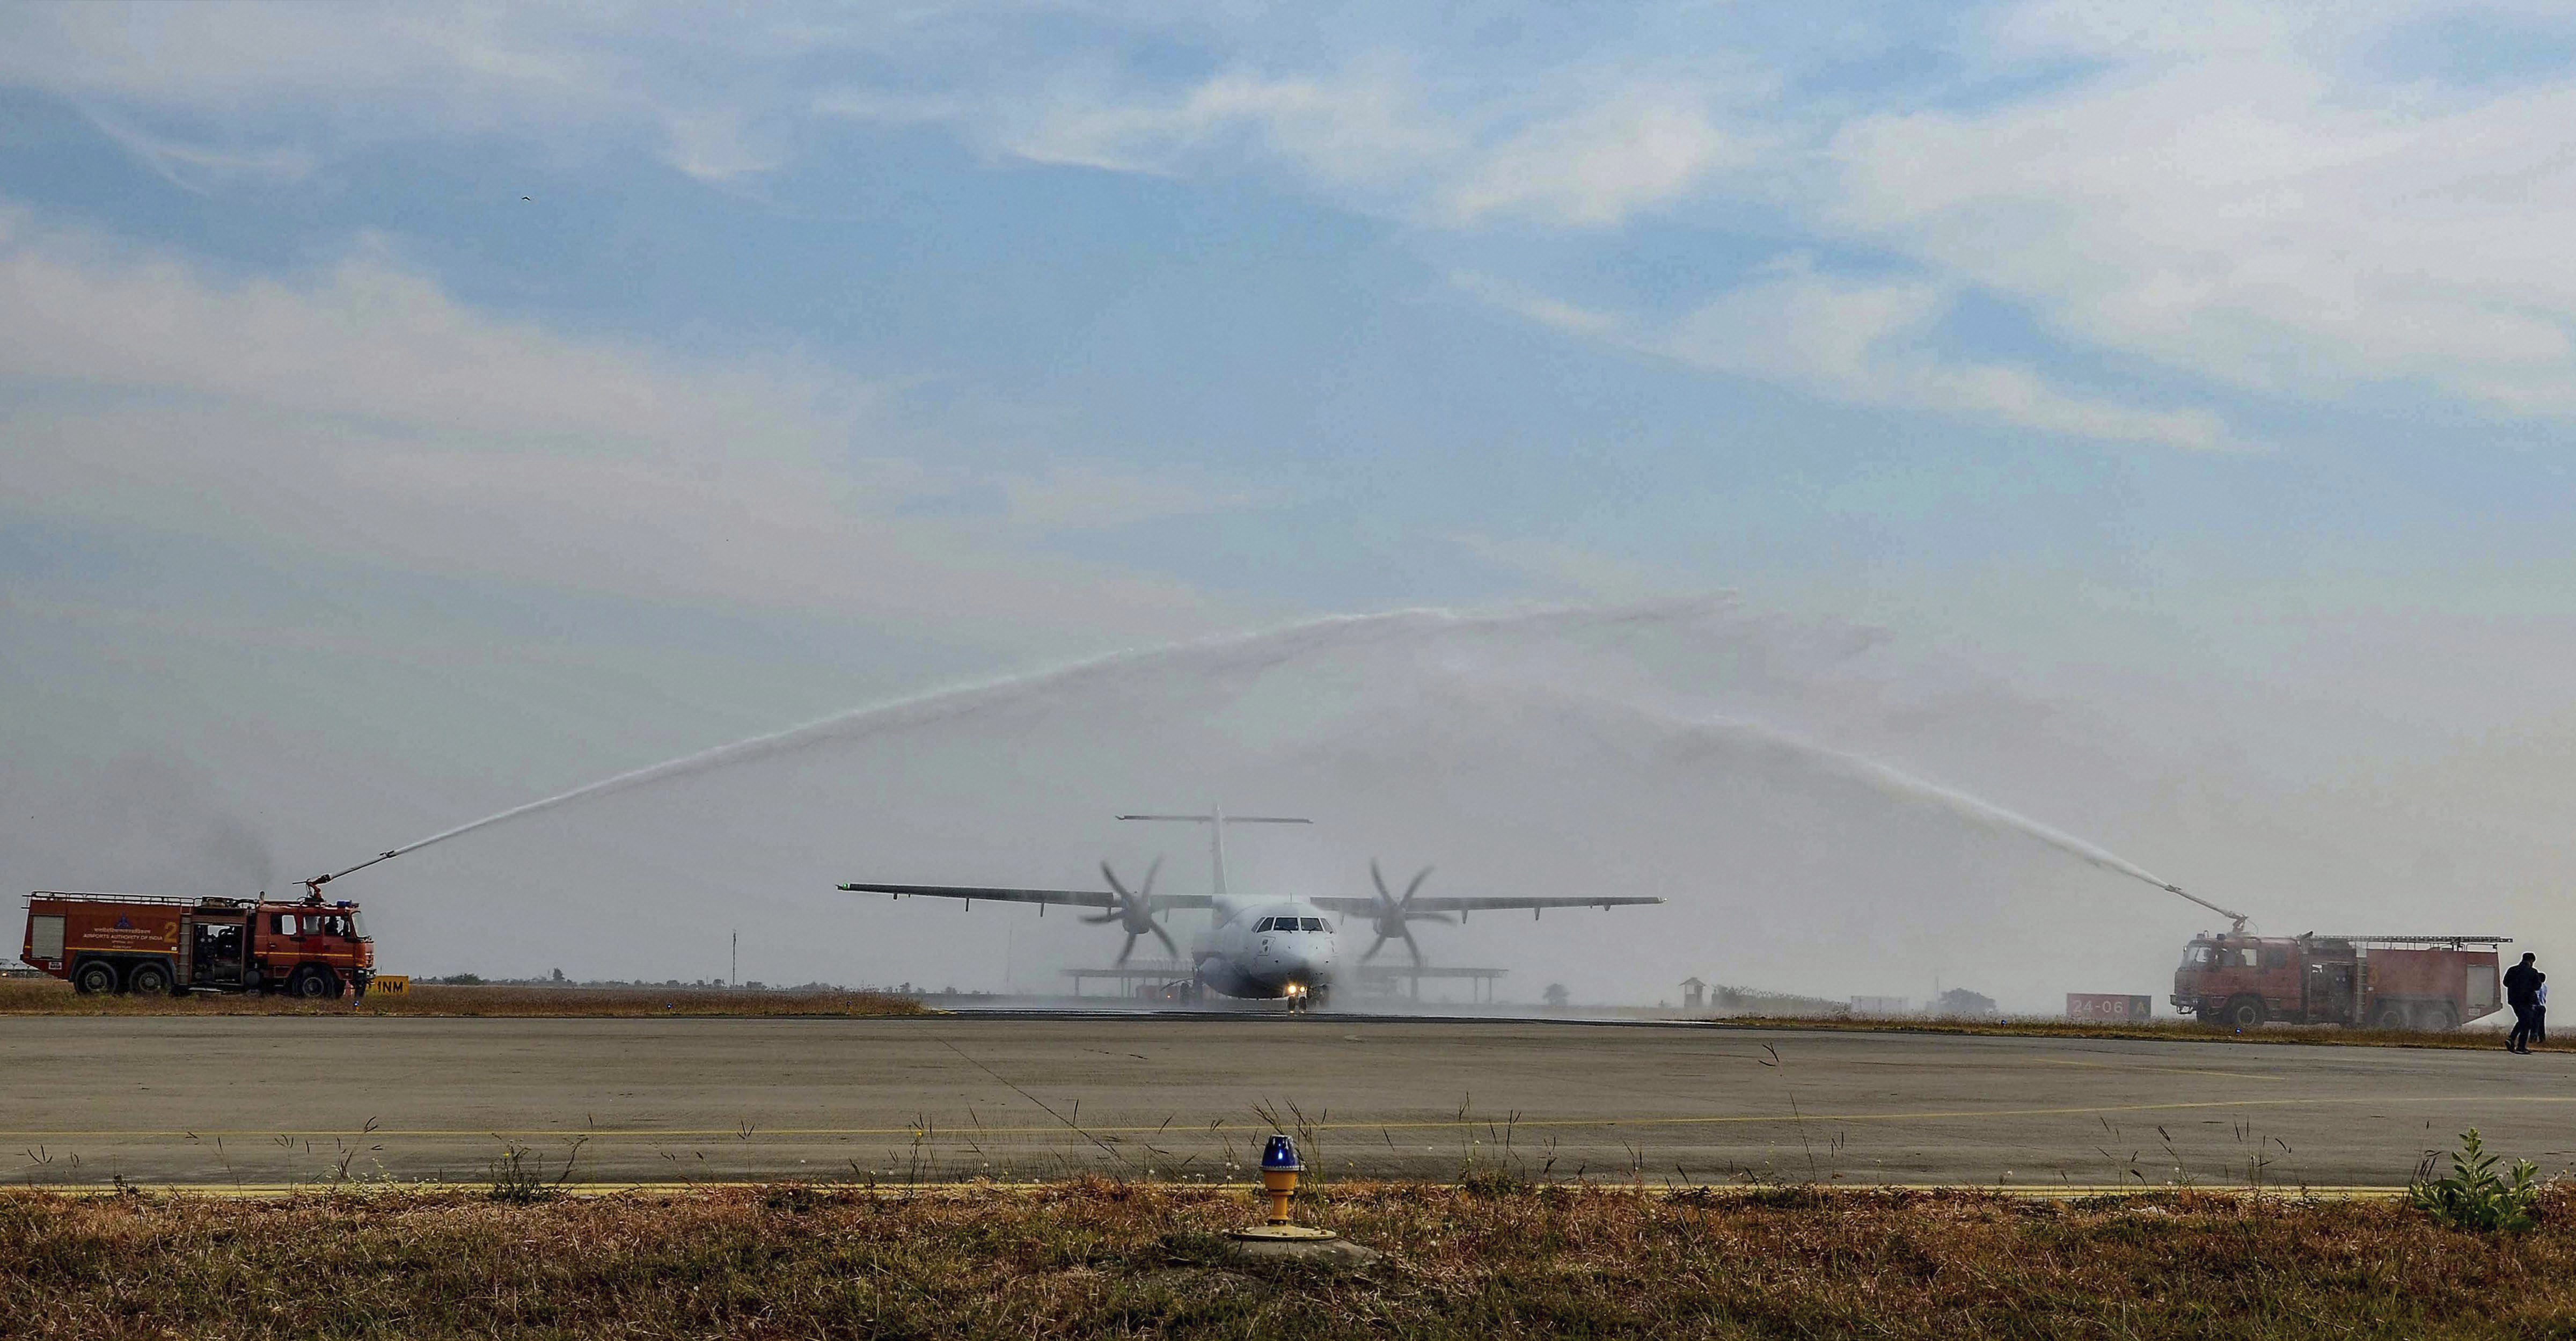 First flight of IndiGo airlines is given water salute after it landed at the newly inaugurated Dumna Airport, in Jabalpur - PTI